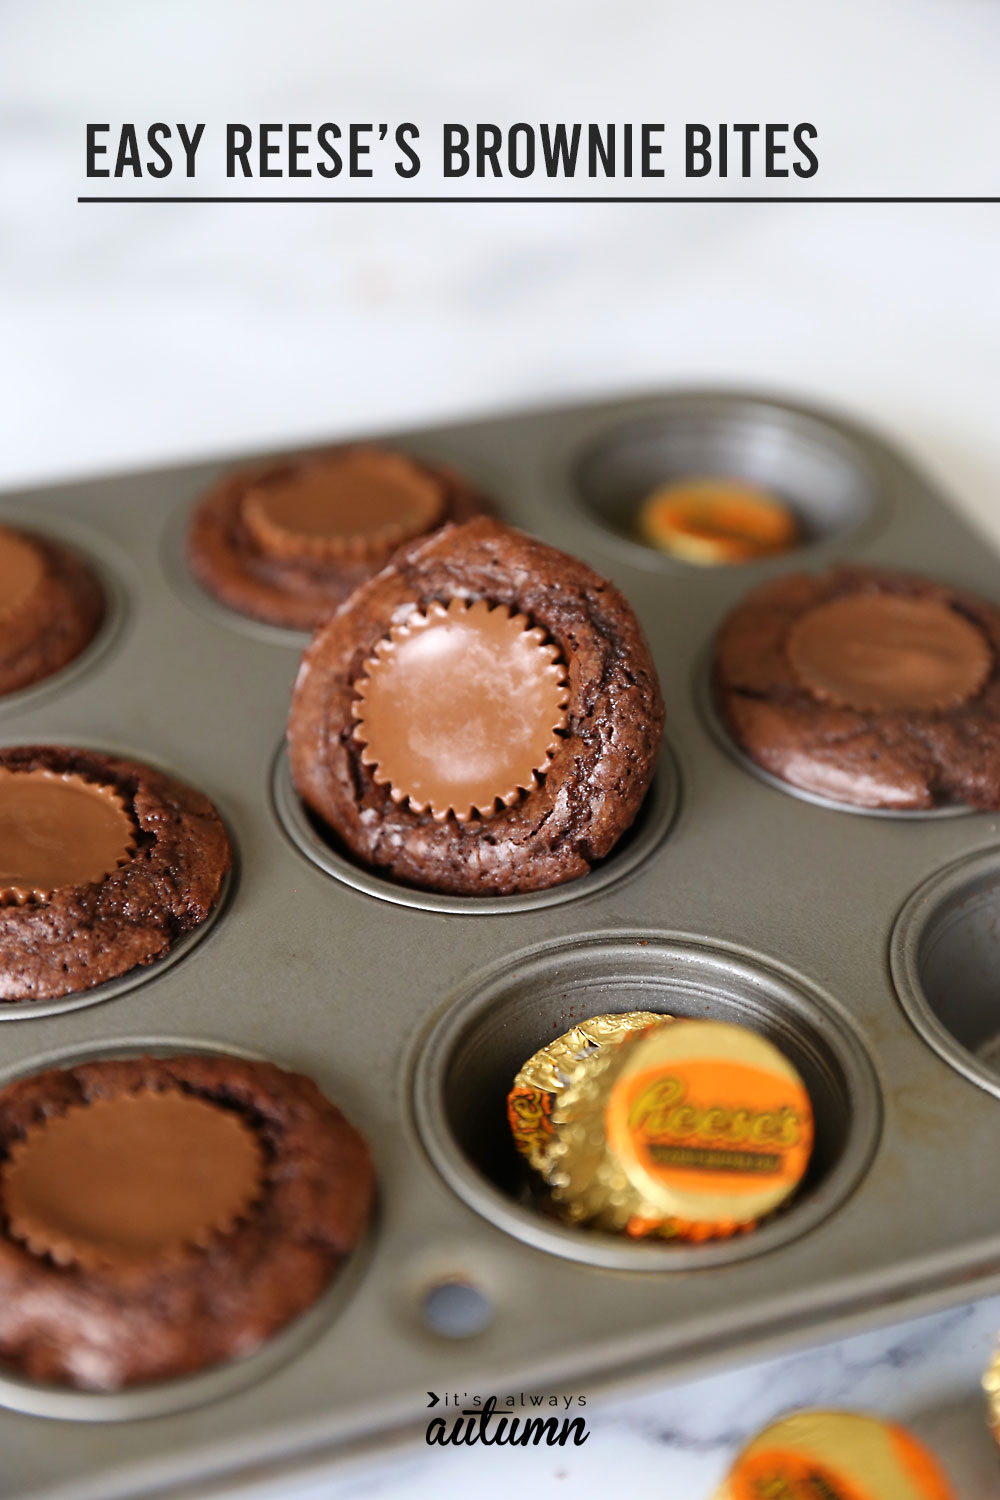 Easy peanut butter cup brownie bites